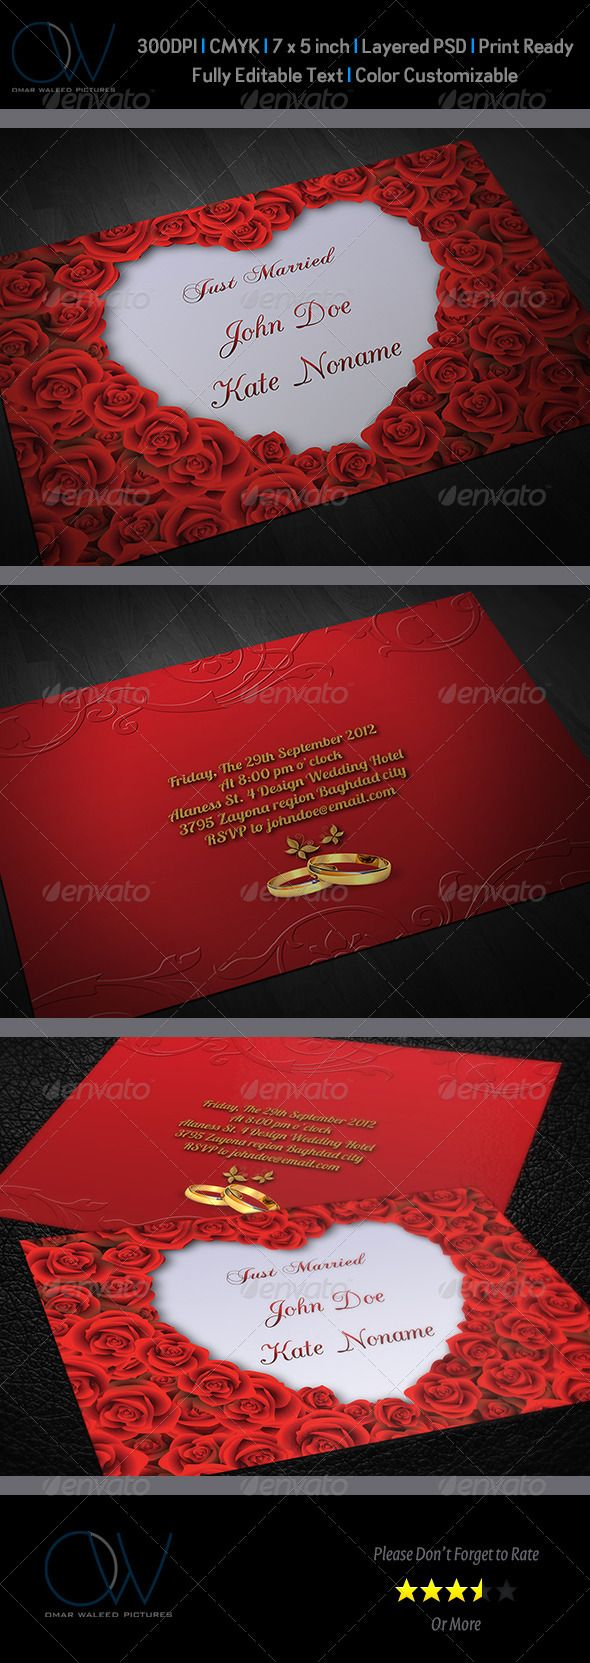 email wedding invitation to work colleagues%0A Wedding Invitation Vol